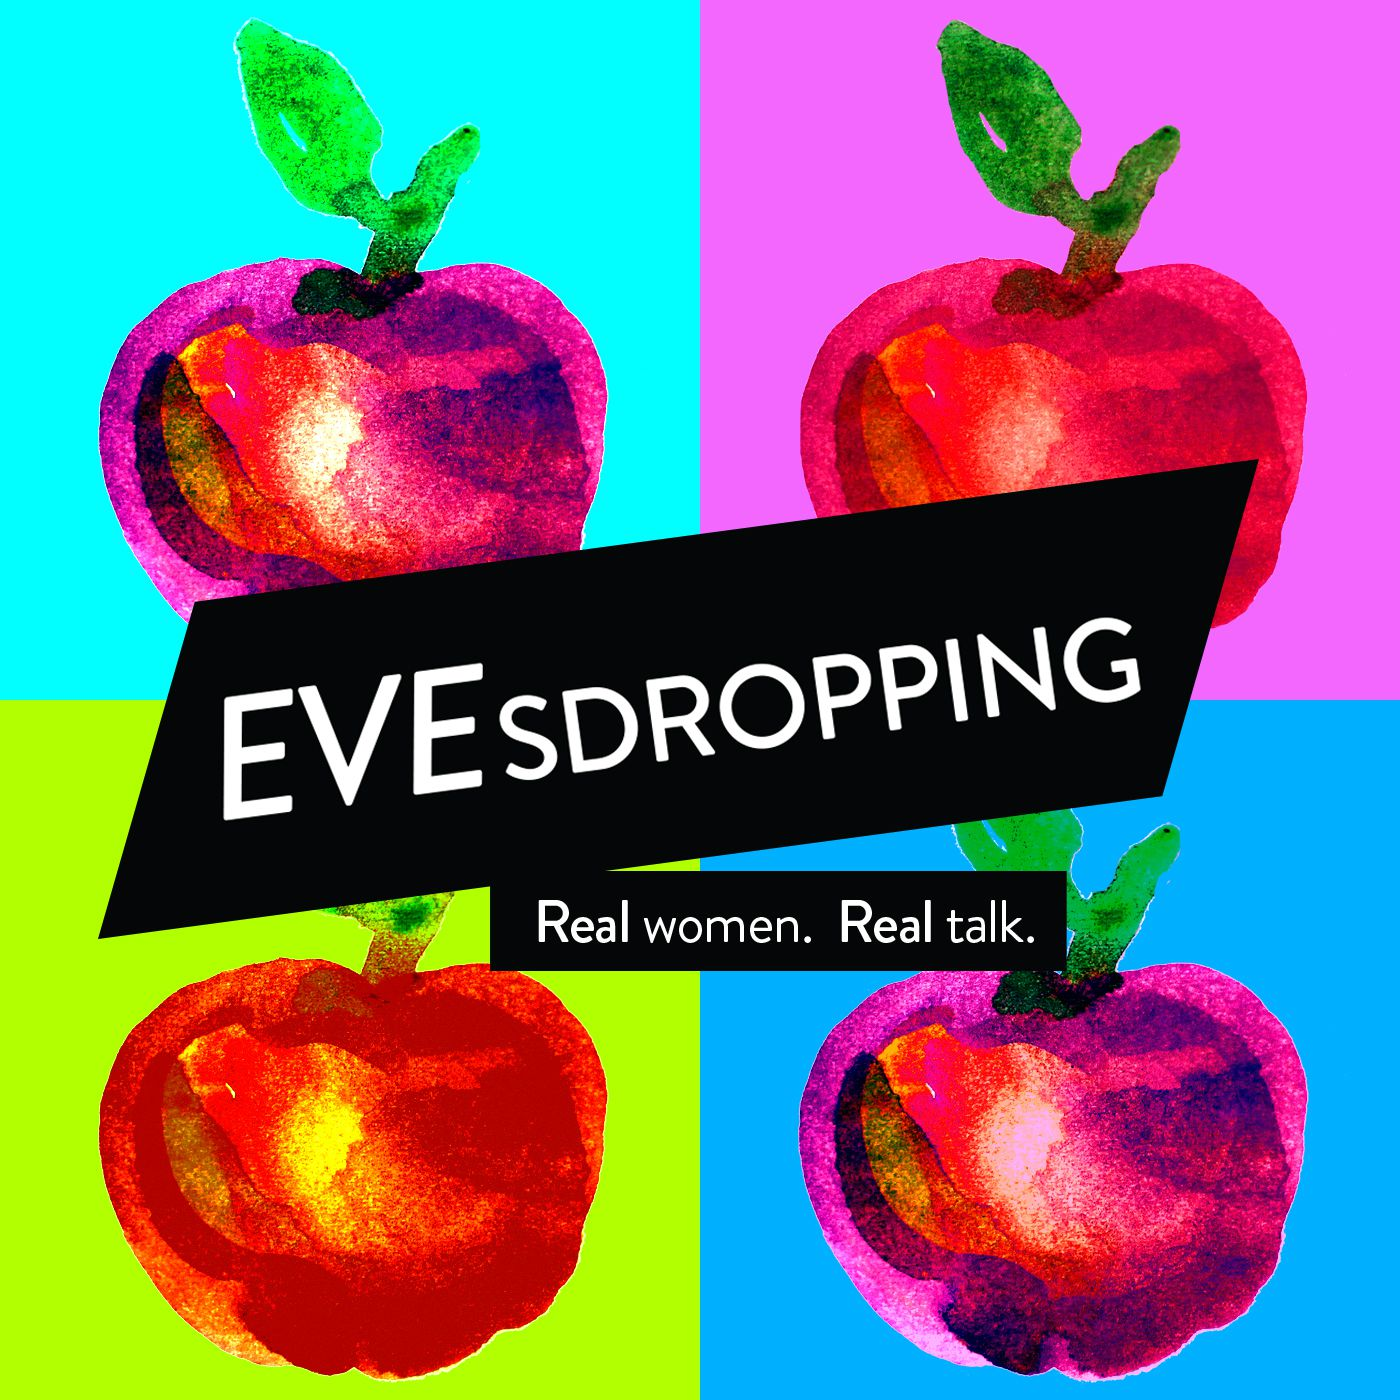 EVEsdropping